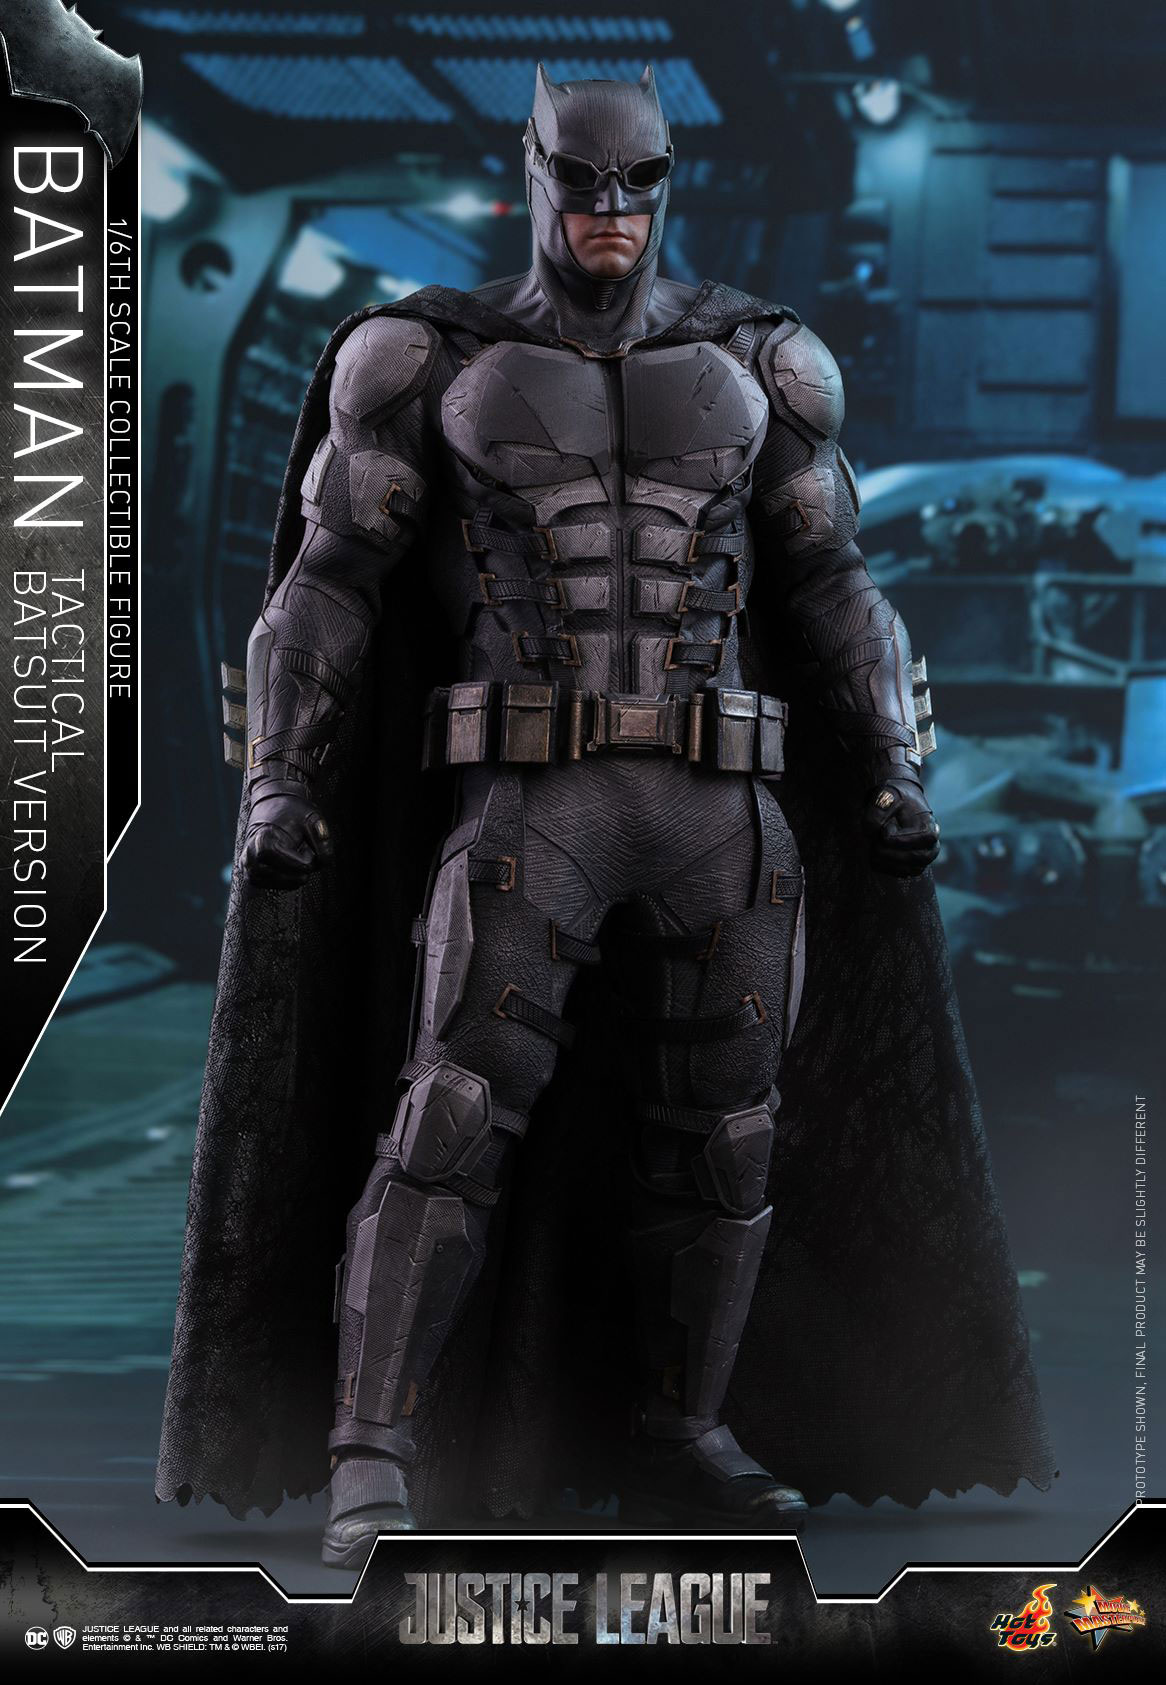 justice-league-batman-tactical-suit-hot-toys-figure-7